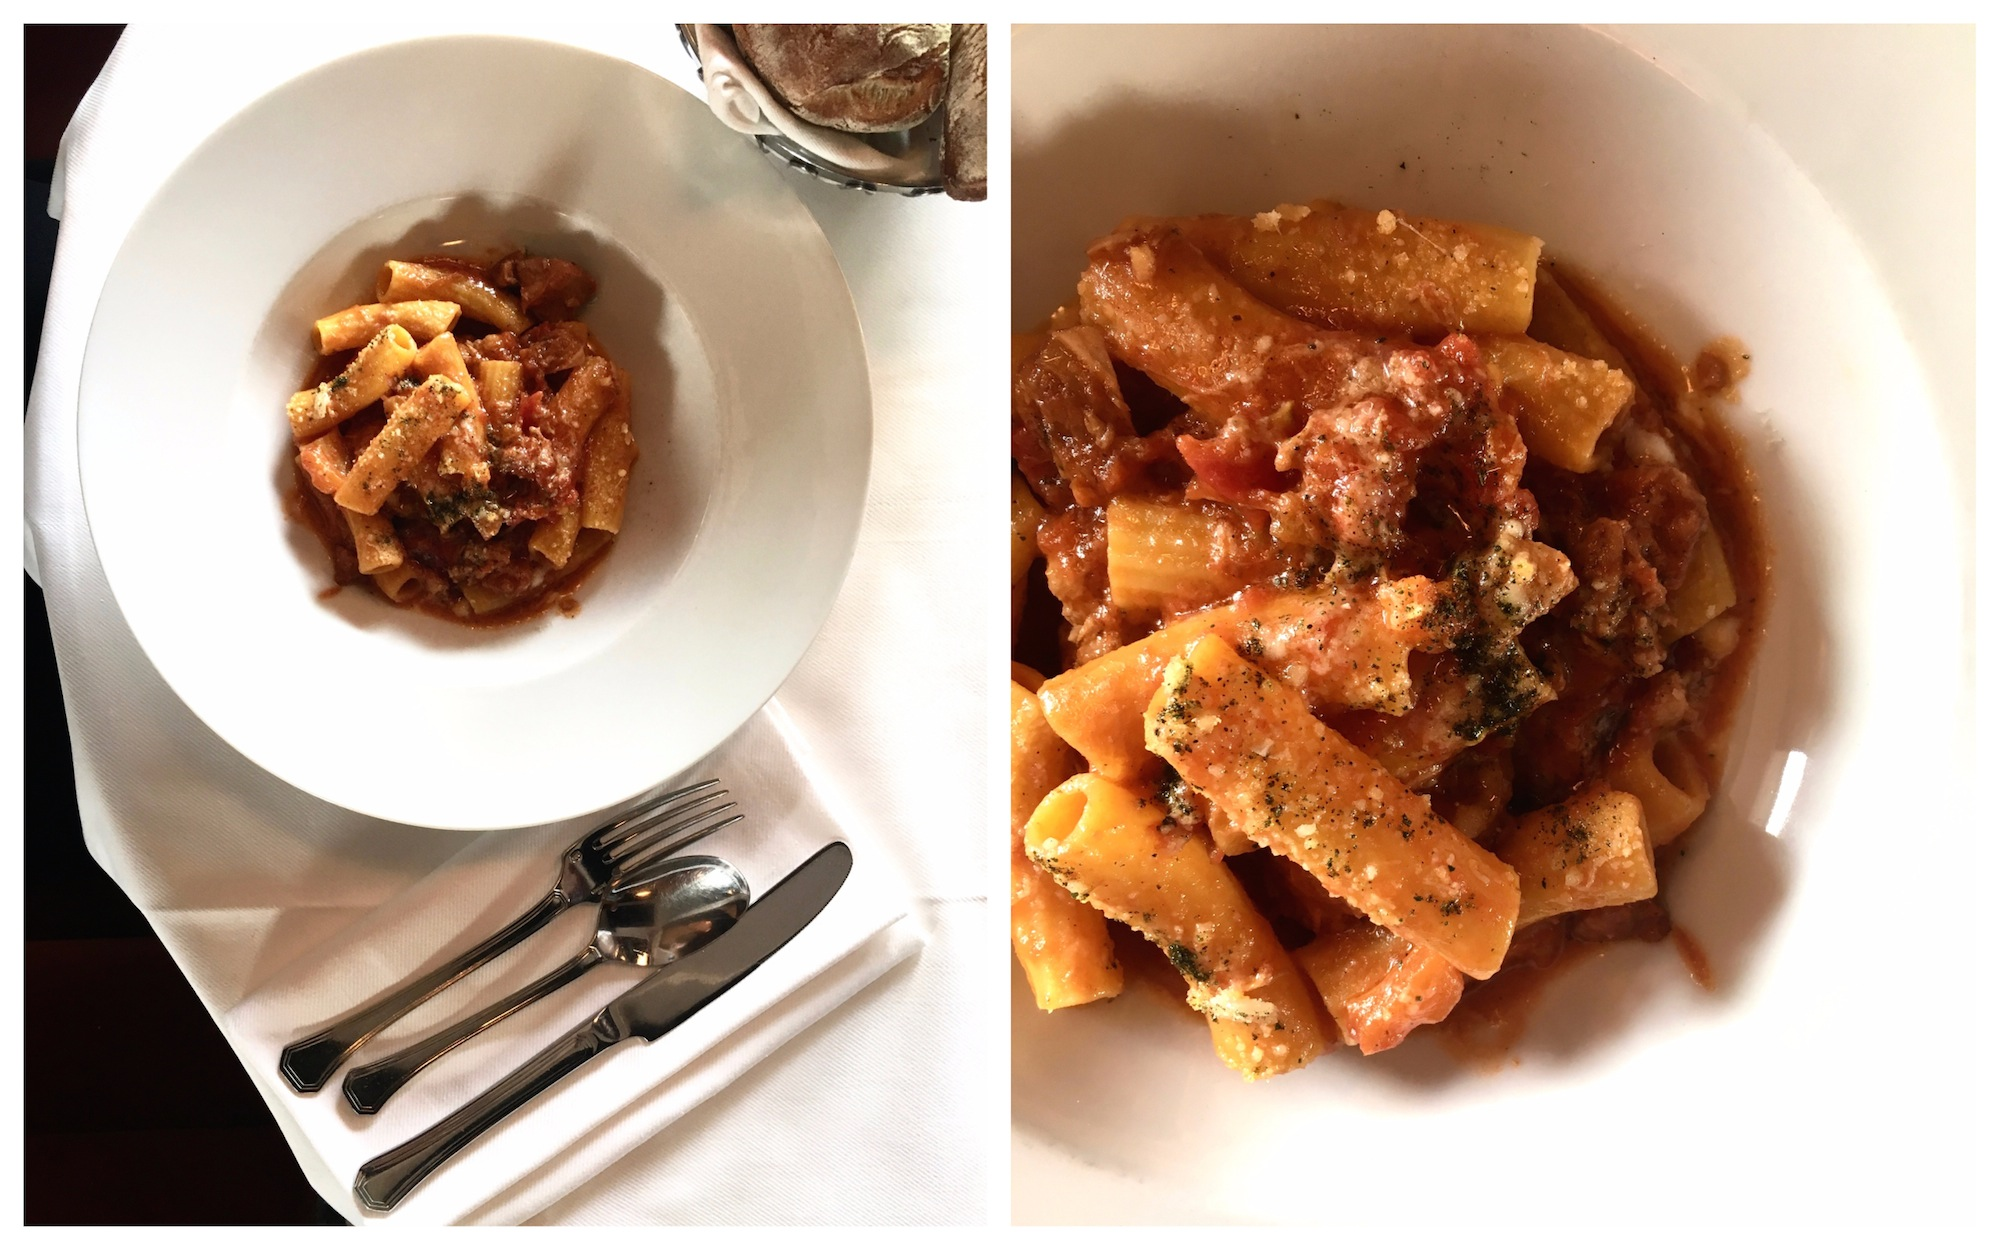 The fresh Sicilian tomato and parmesan pasta at Loulou restaurant in Paris is delicious.